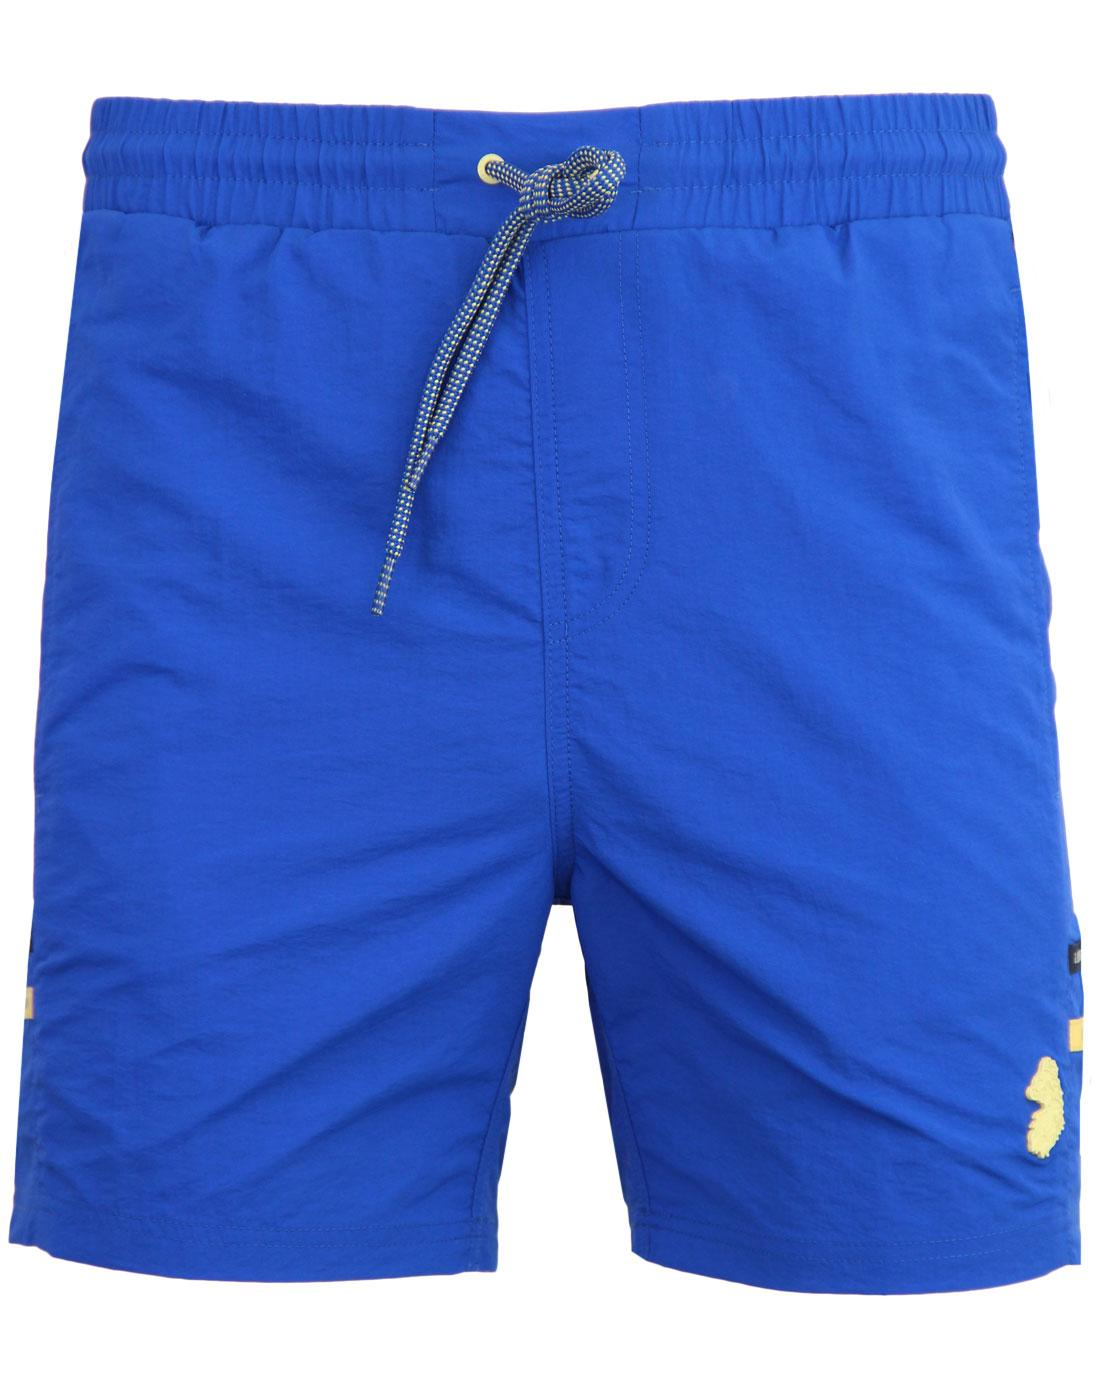 Ragy LUKE 1977 Mens Indie Summer Swim Shorts BLUE